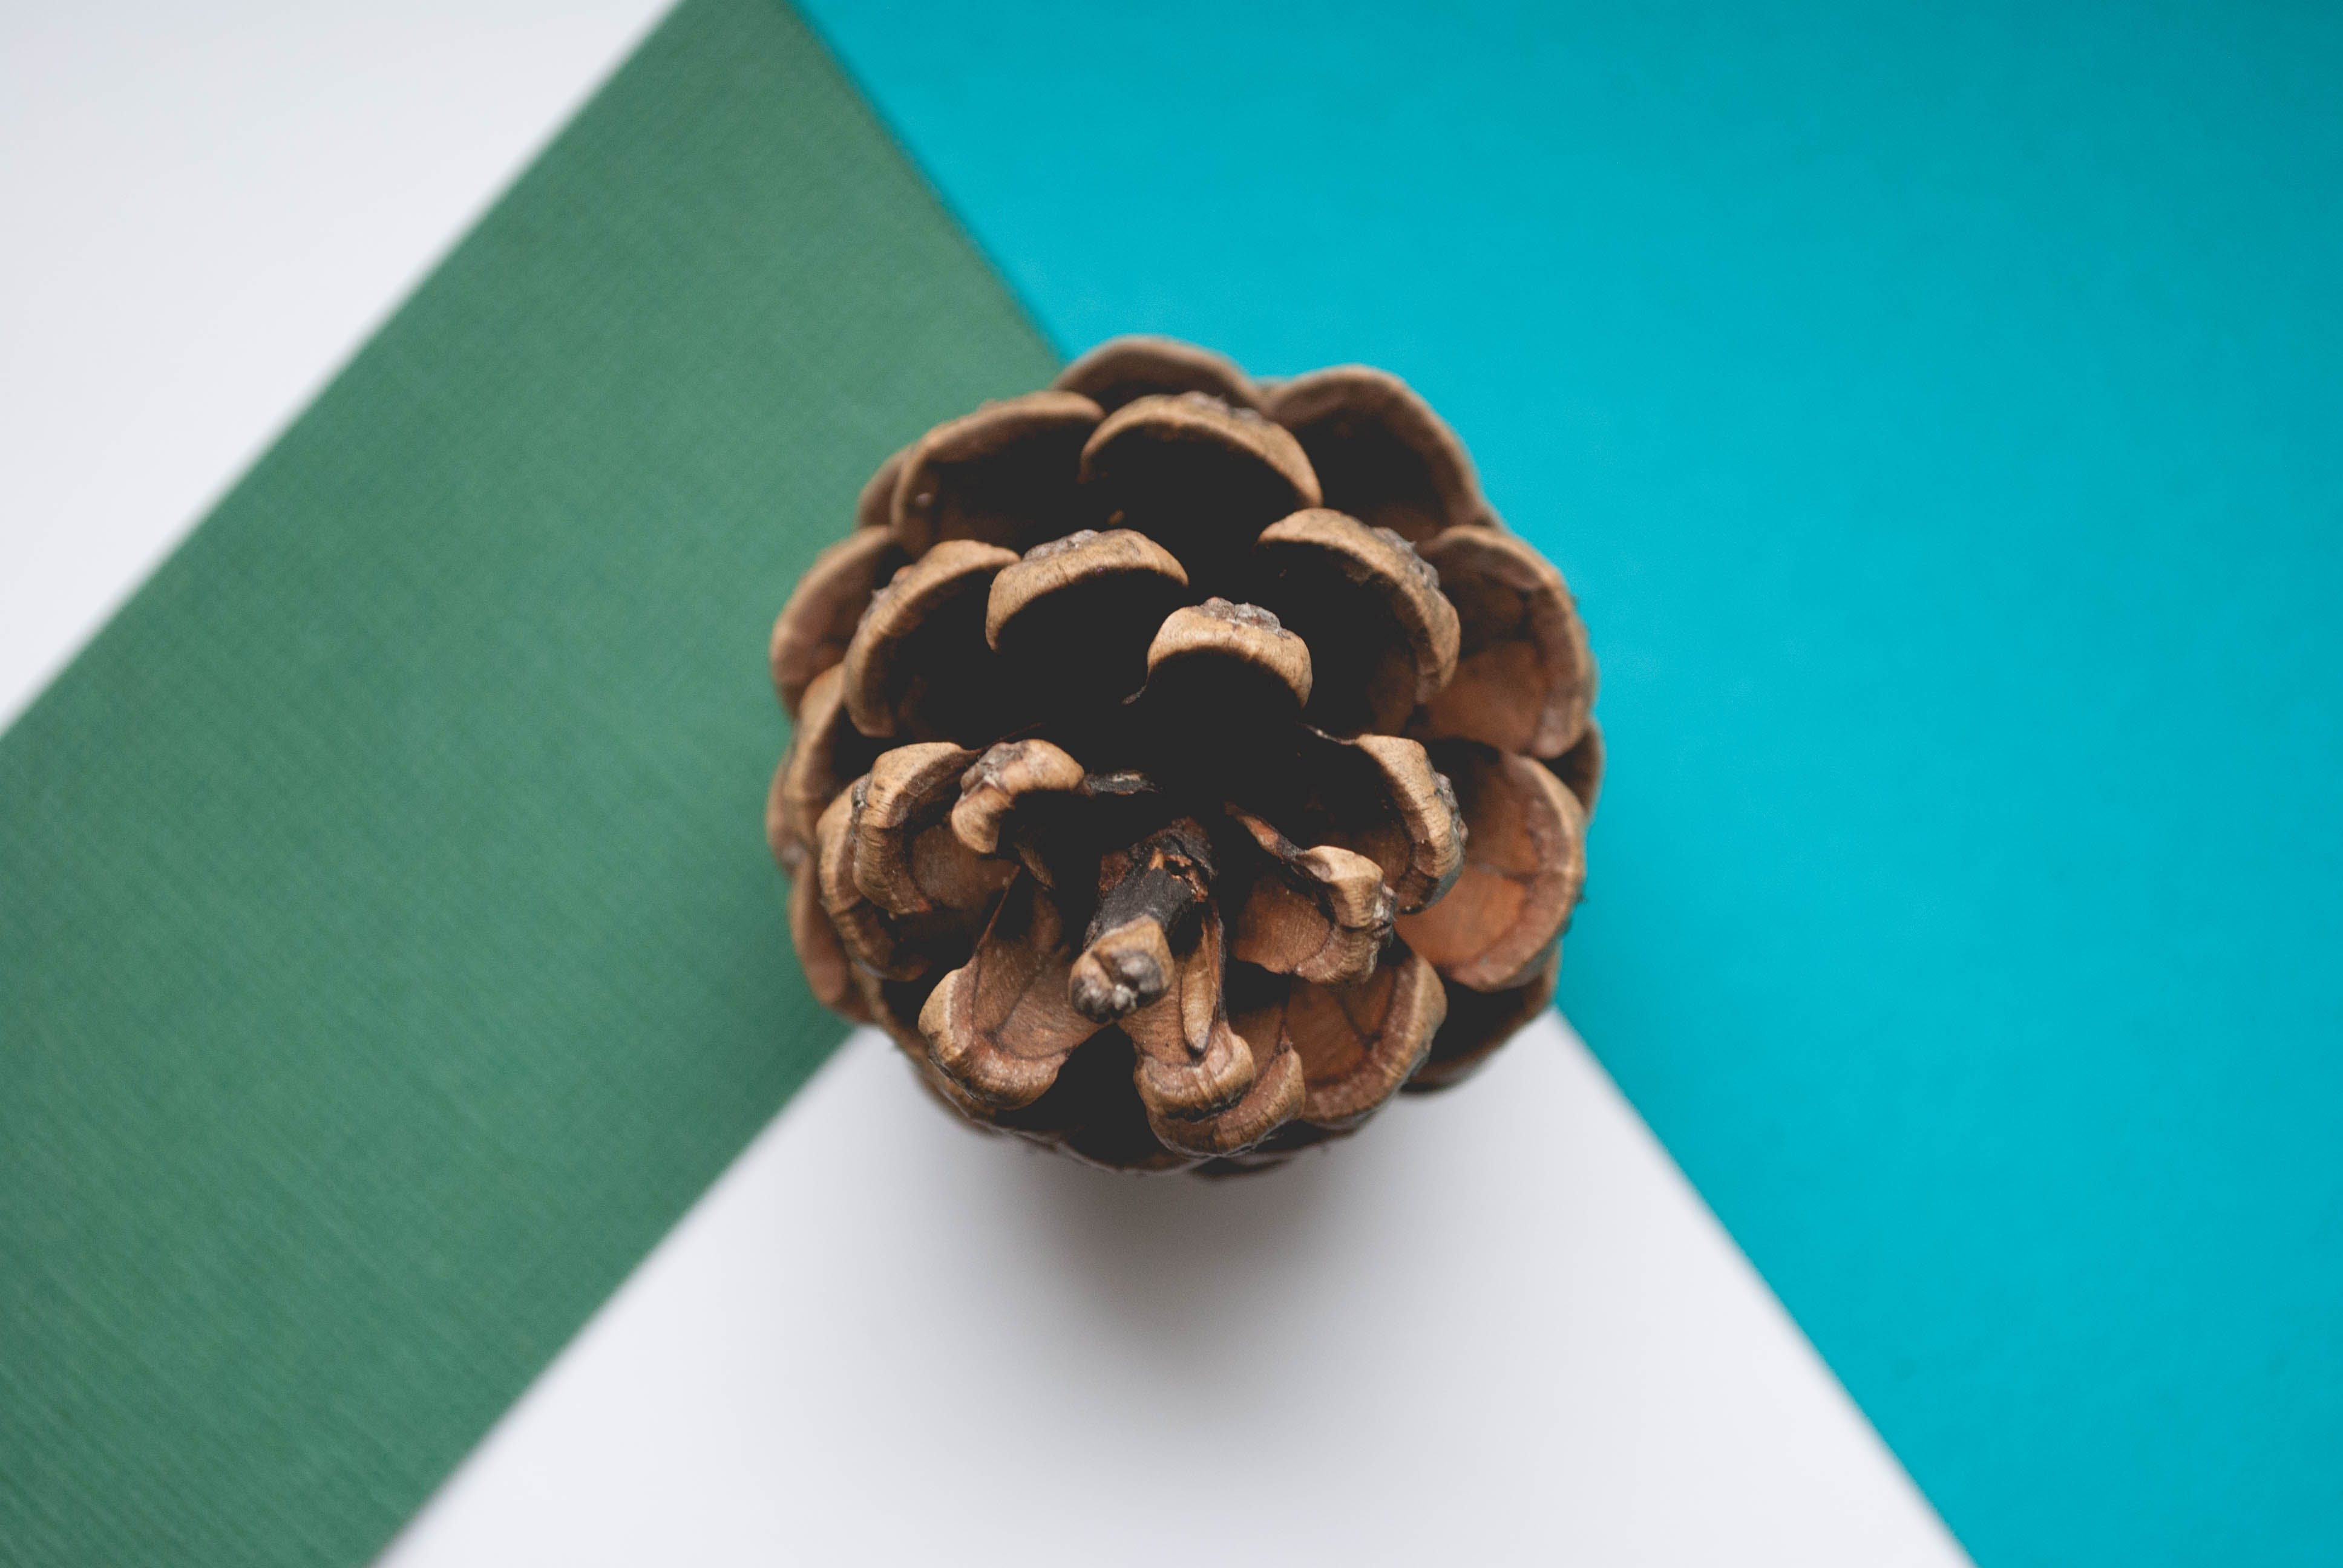 Brown Pinecone Close-up